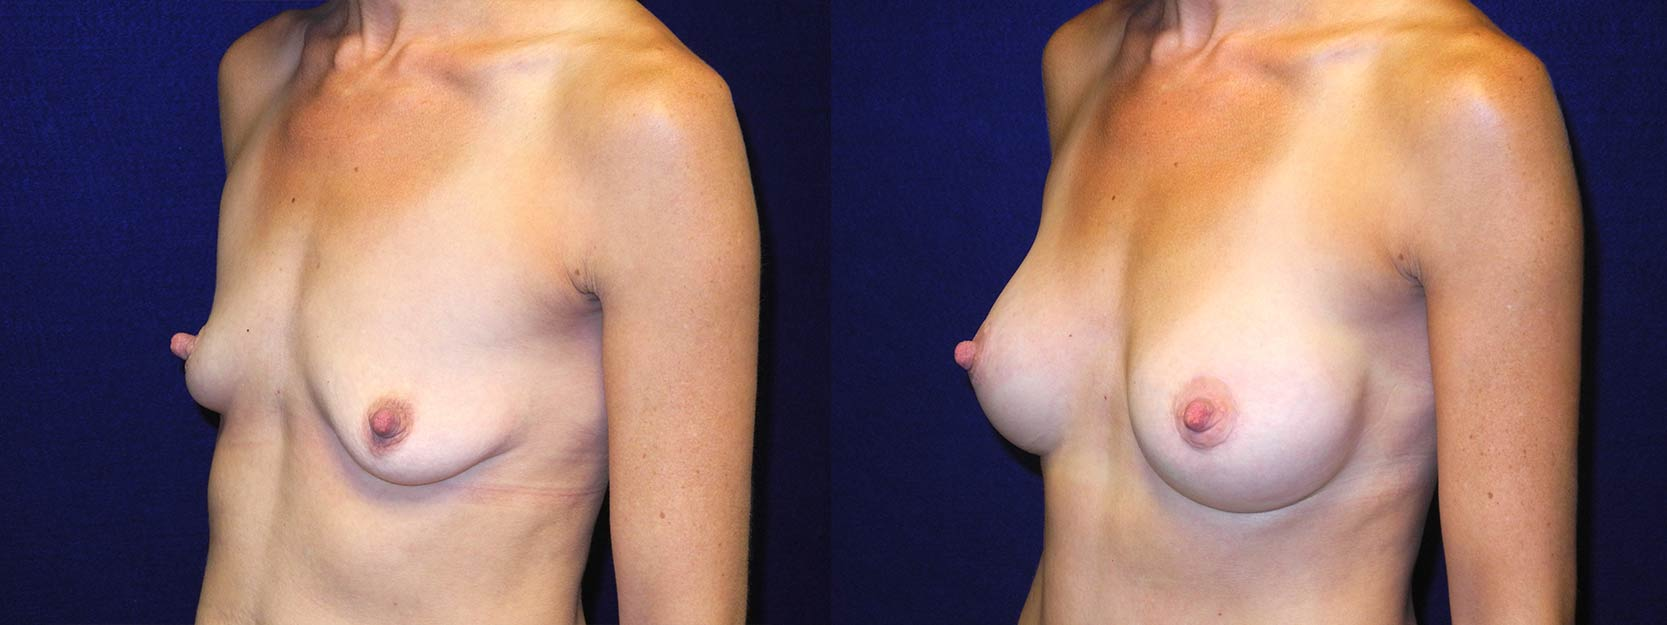 Left 3/4 View - Breast Augmentation After Pregnancy